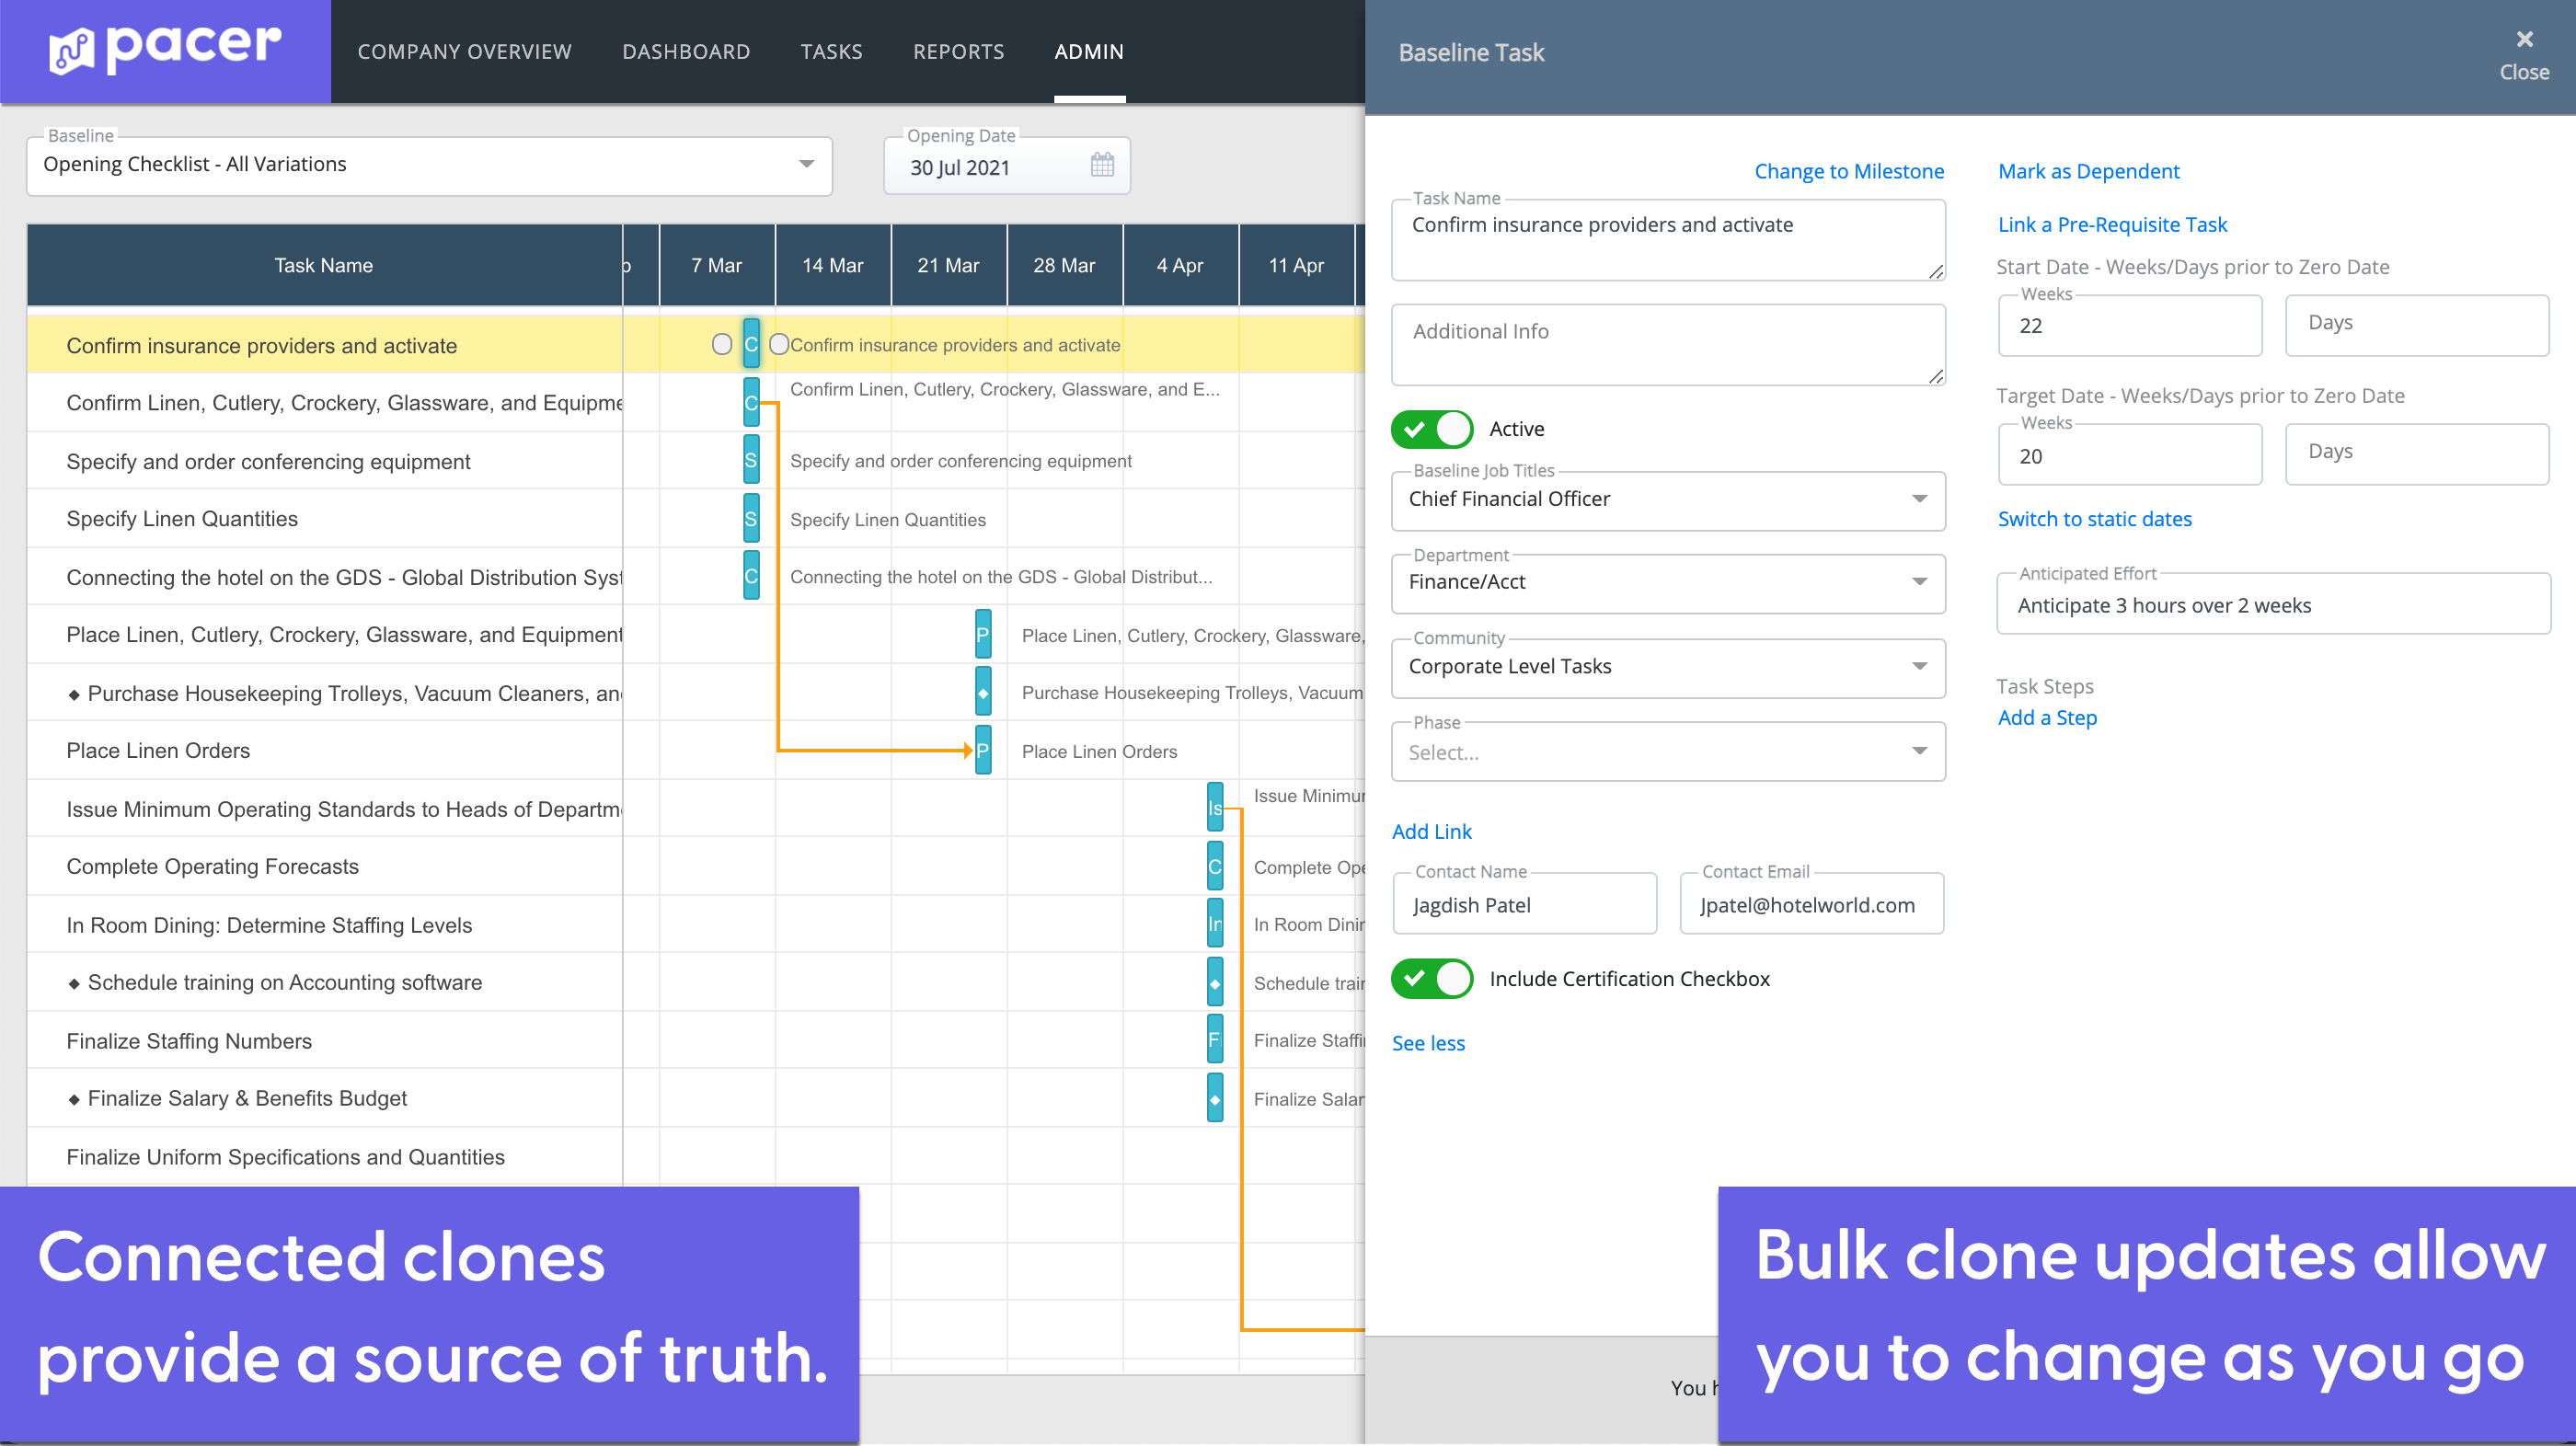 Faster Deployment with Consistency - Pacer provides actionable data that lets you deploy projects and update multiple tasks in bulk. Tweak tasks, change deadlines, update teams on the fly, and never lose sight of where you are and where you're going.